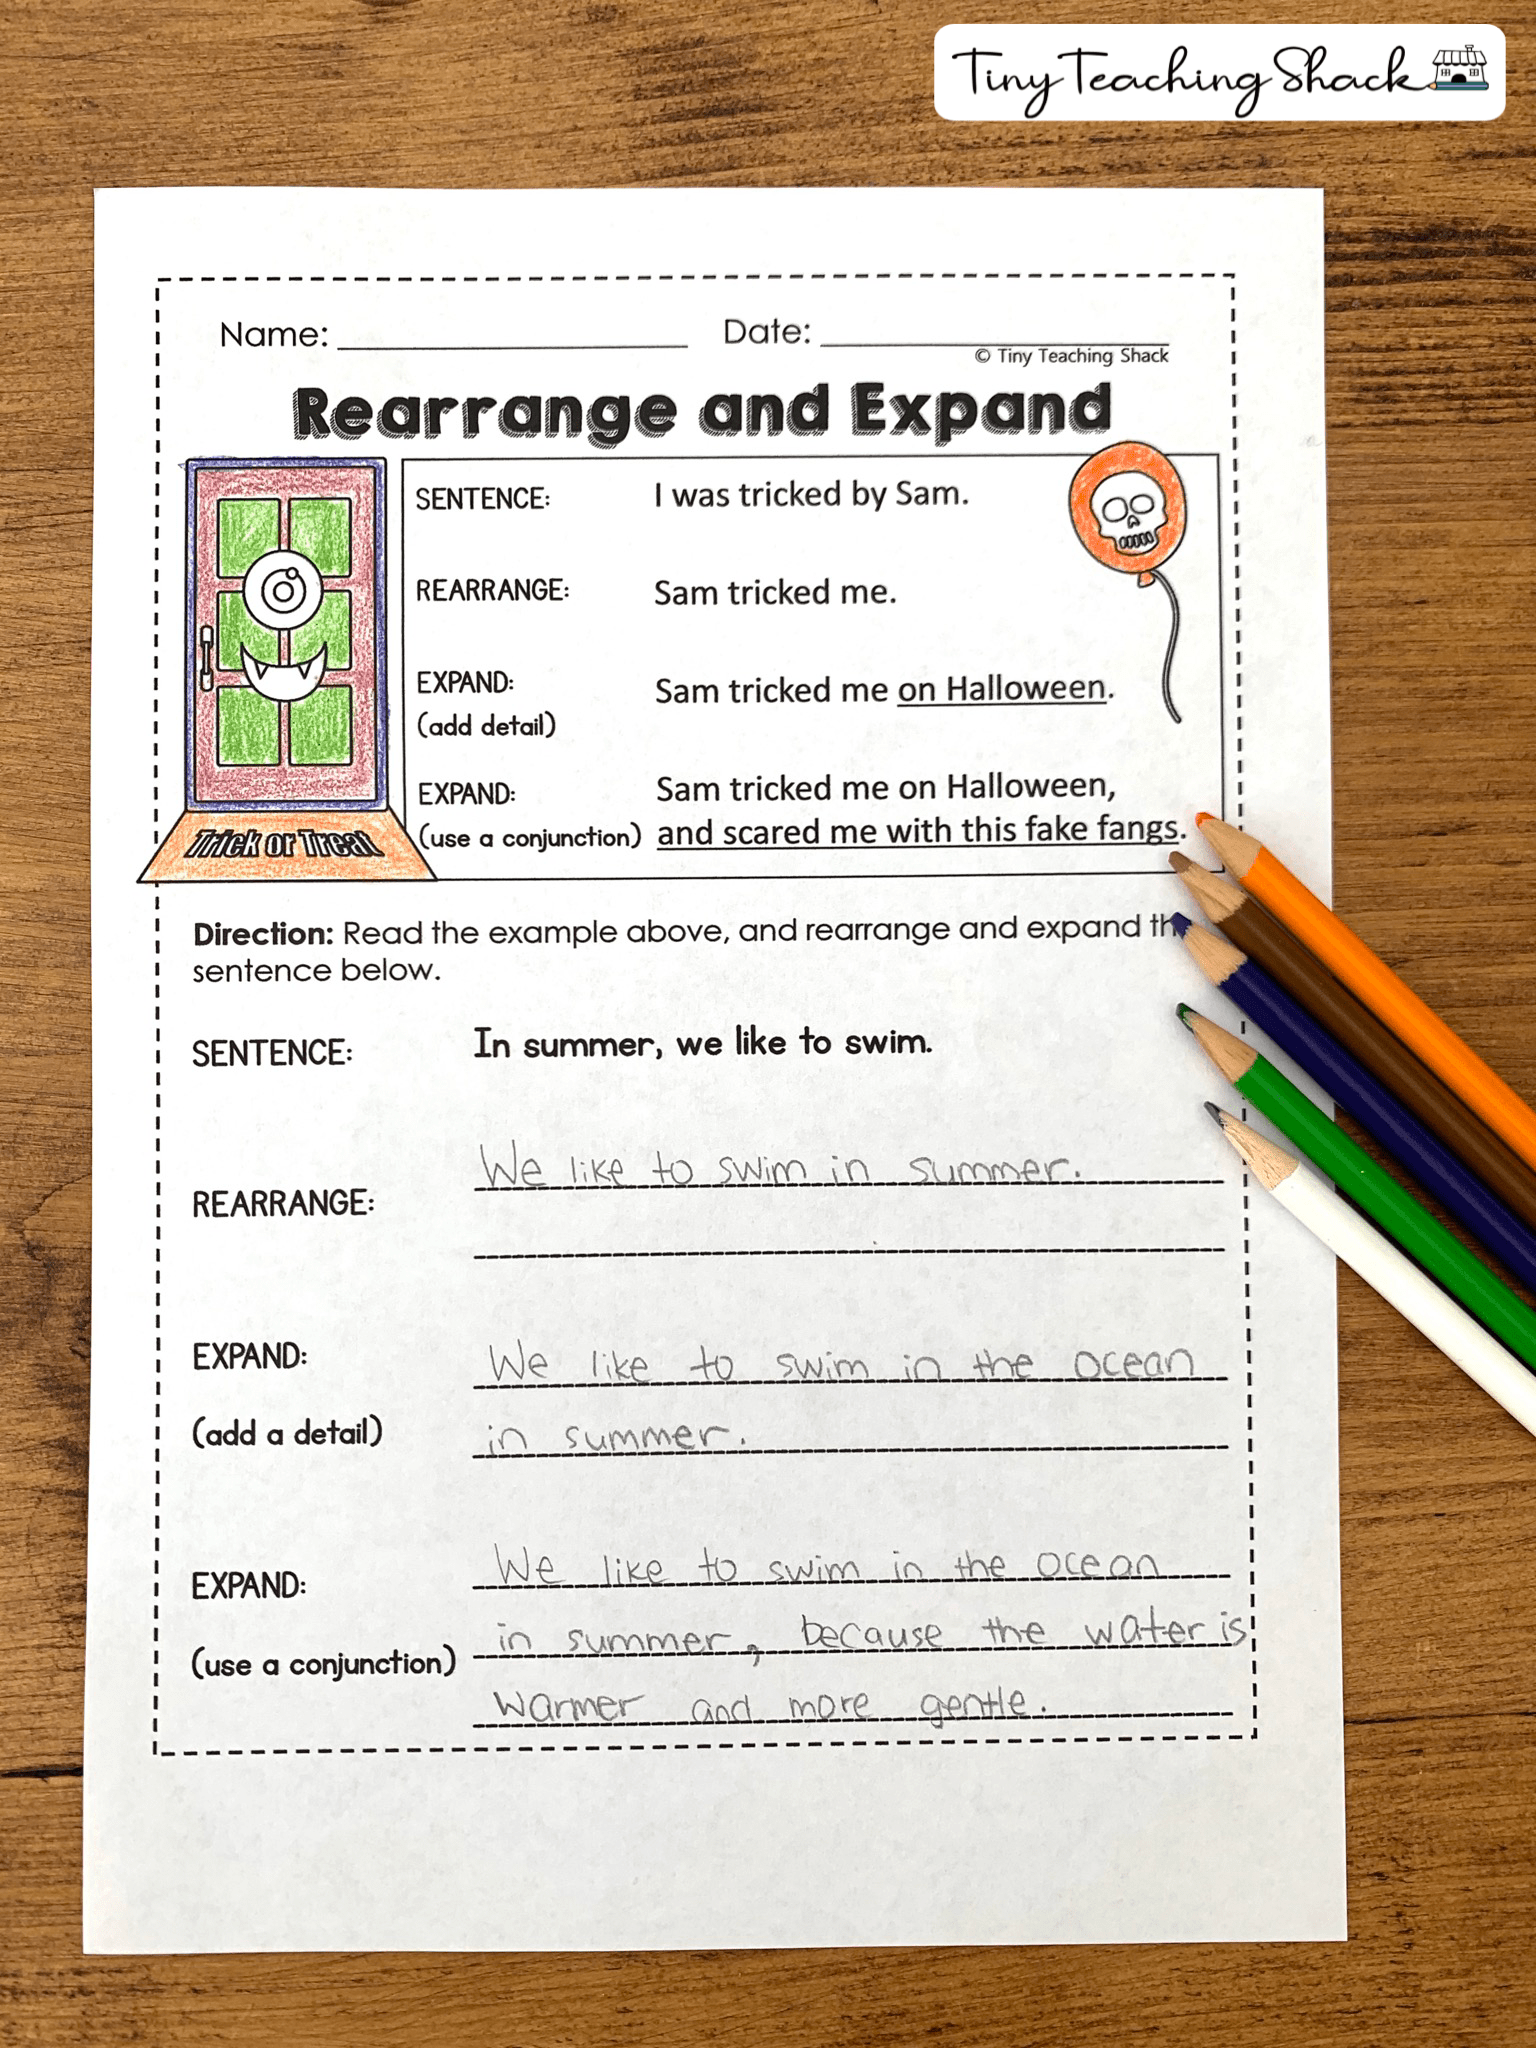 Rearranging And Expanding Setences Simple And Compound Sentences Compound Sentences Sentence Anchor Chart [ 2048 x 1536 Pixel ]